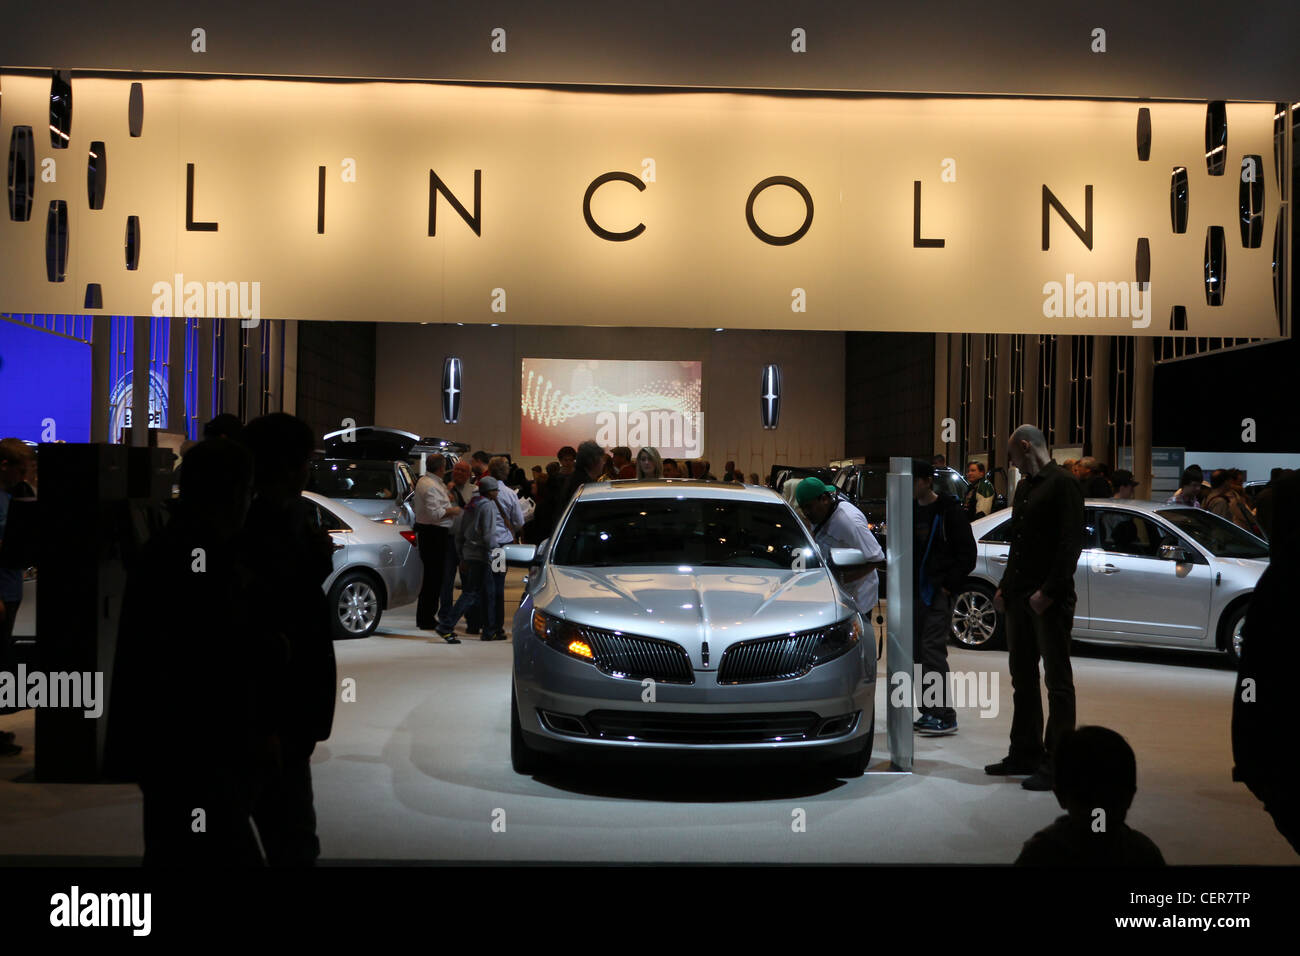 Lincoln Car Stock Photos Lincoln Car Stock Images Alamy - Lincoln car show